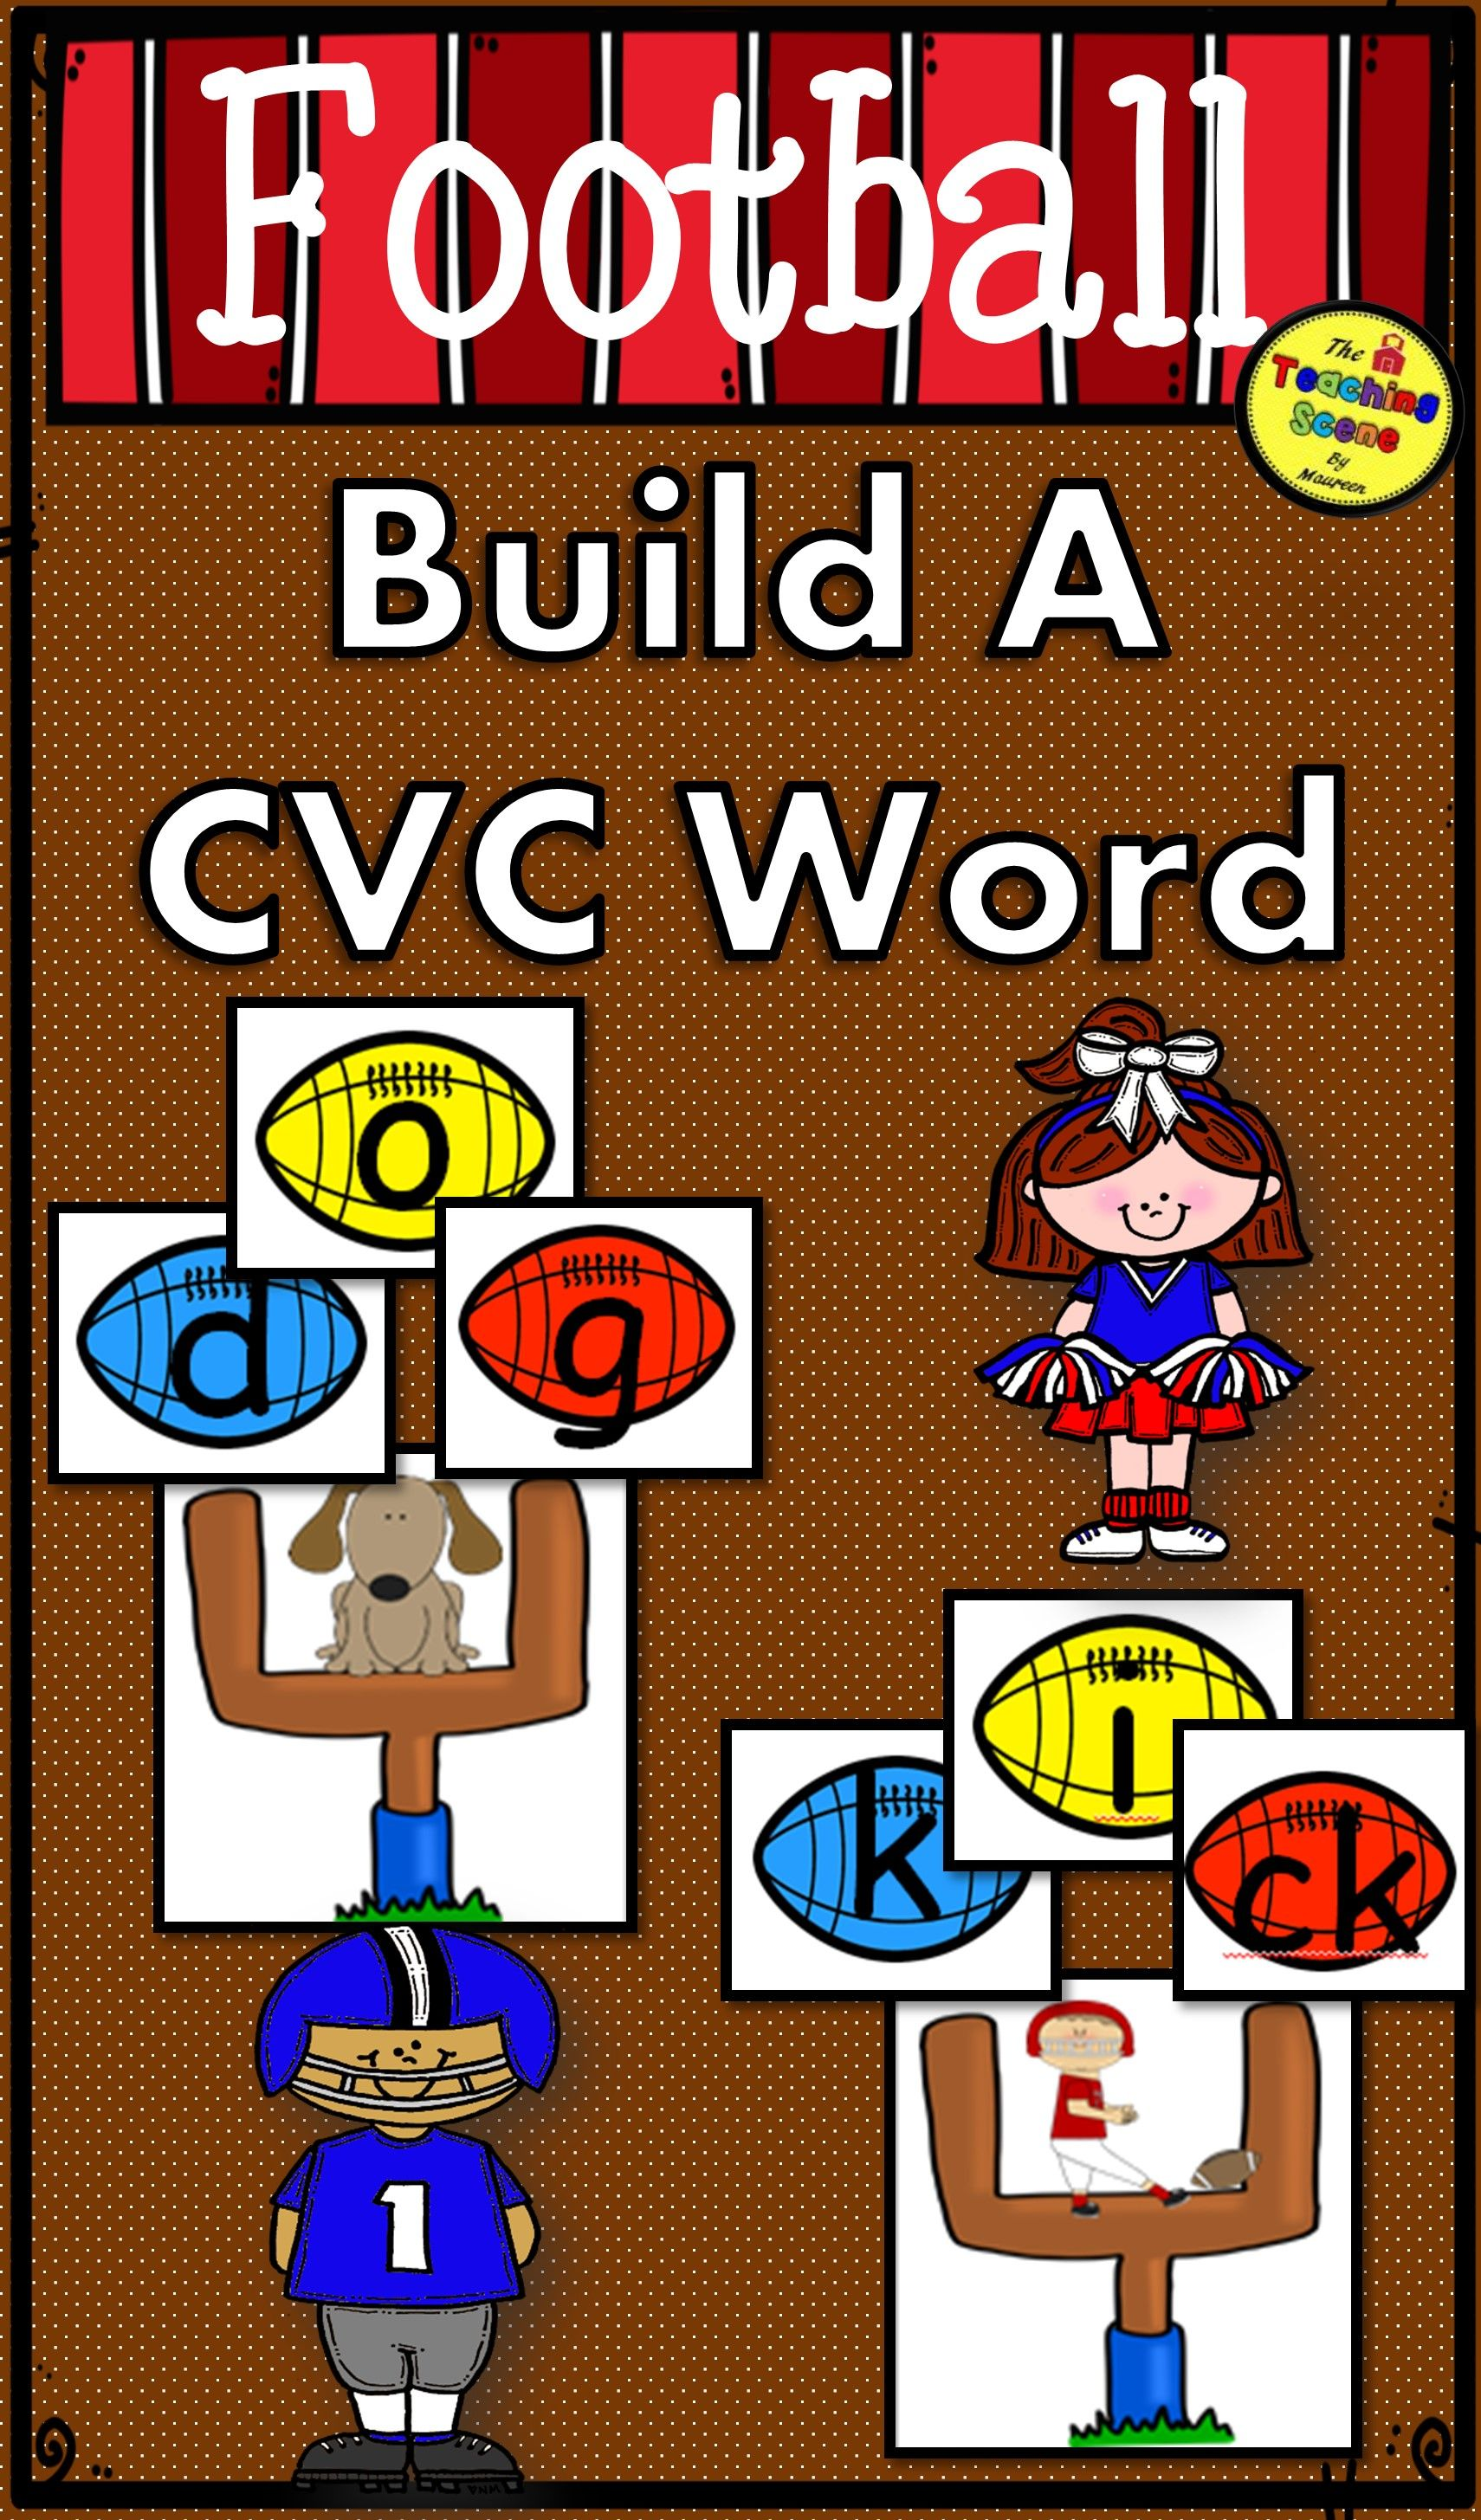 Football Build A Cvc Word Phonics Game